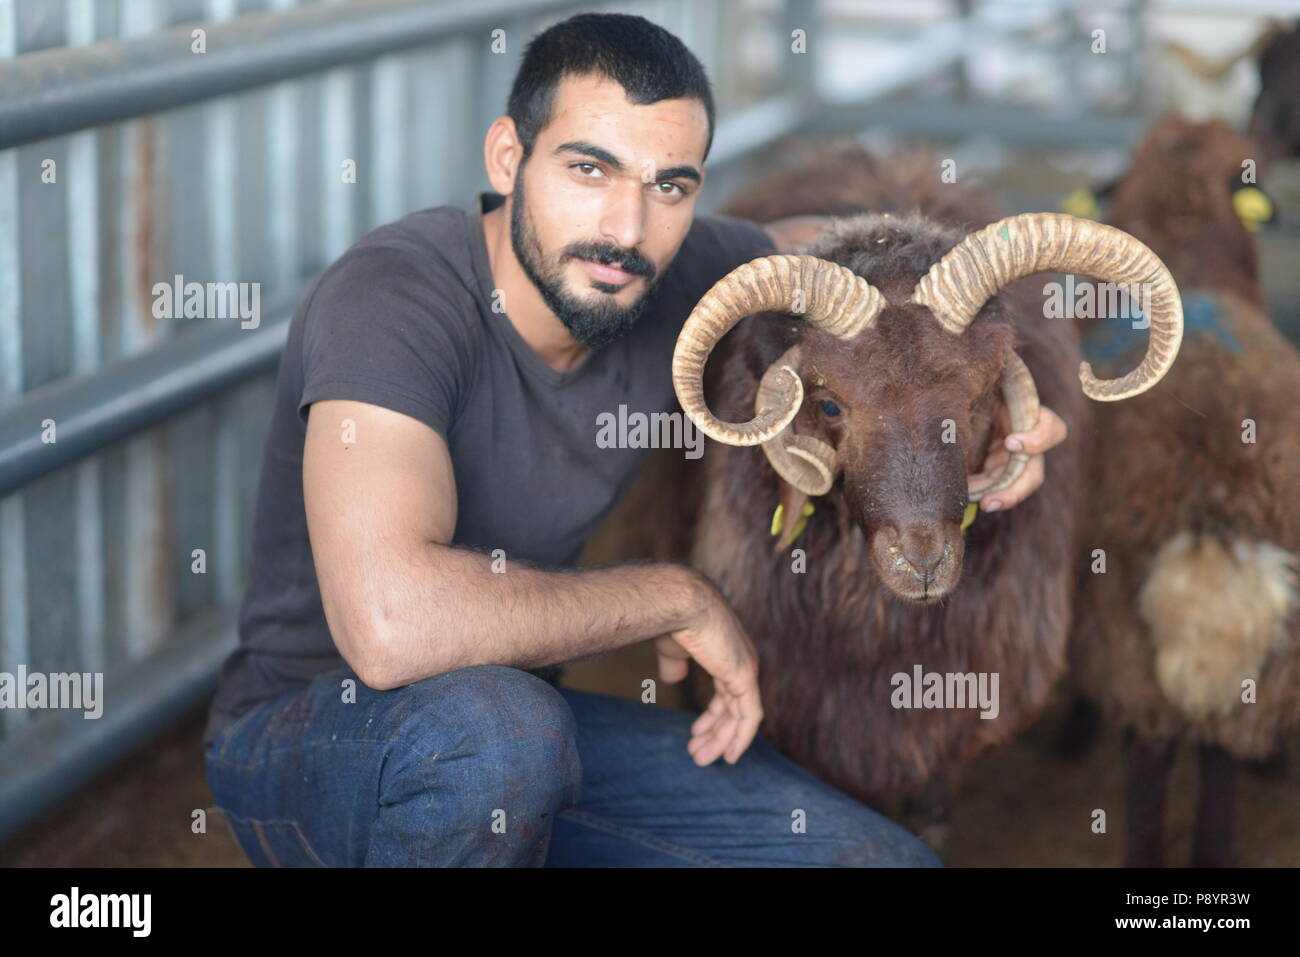 Muslim man slaughtering sheep, for the Eid-al Adha sacrifiyng feast, Feast of sacrifice - Stock Image